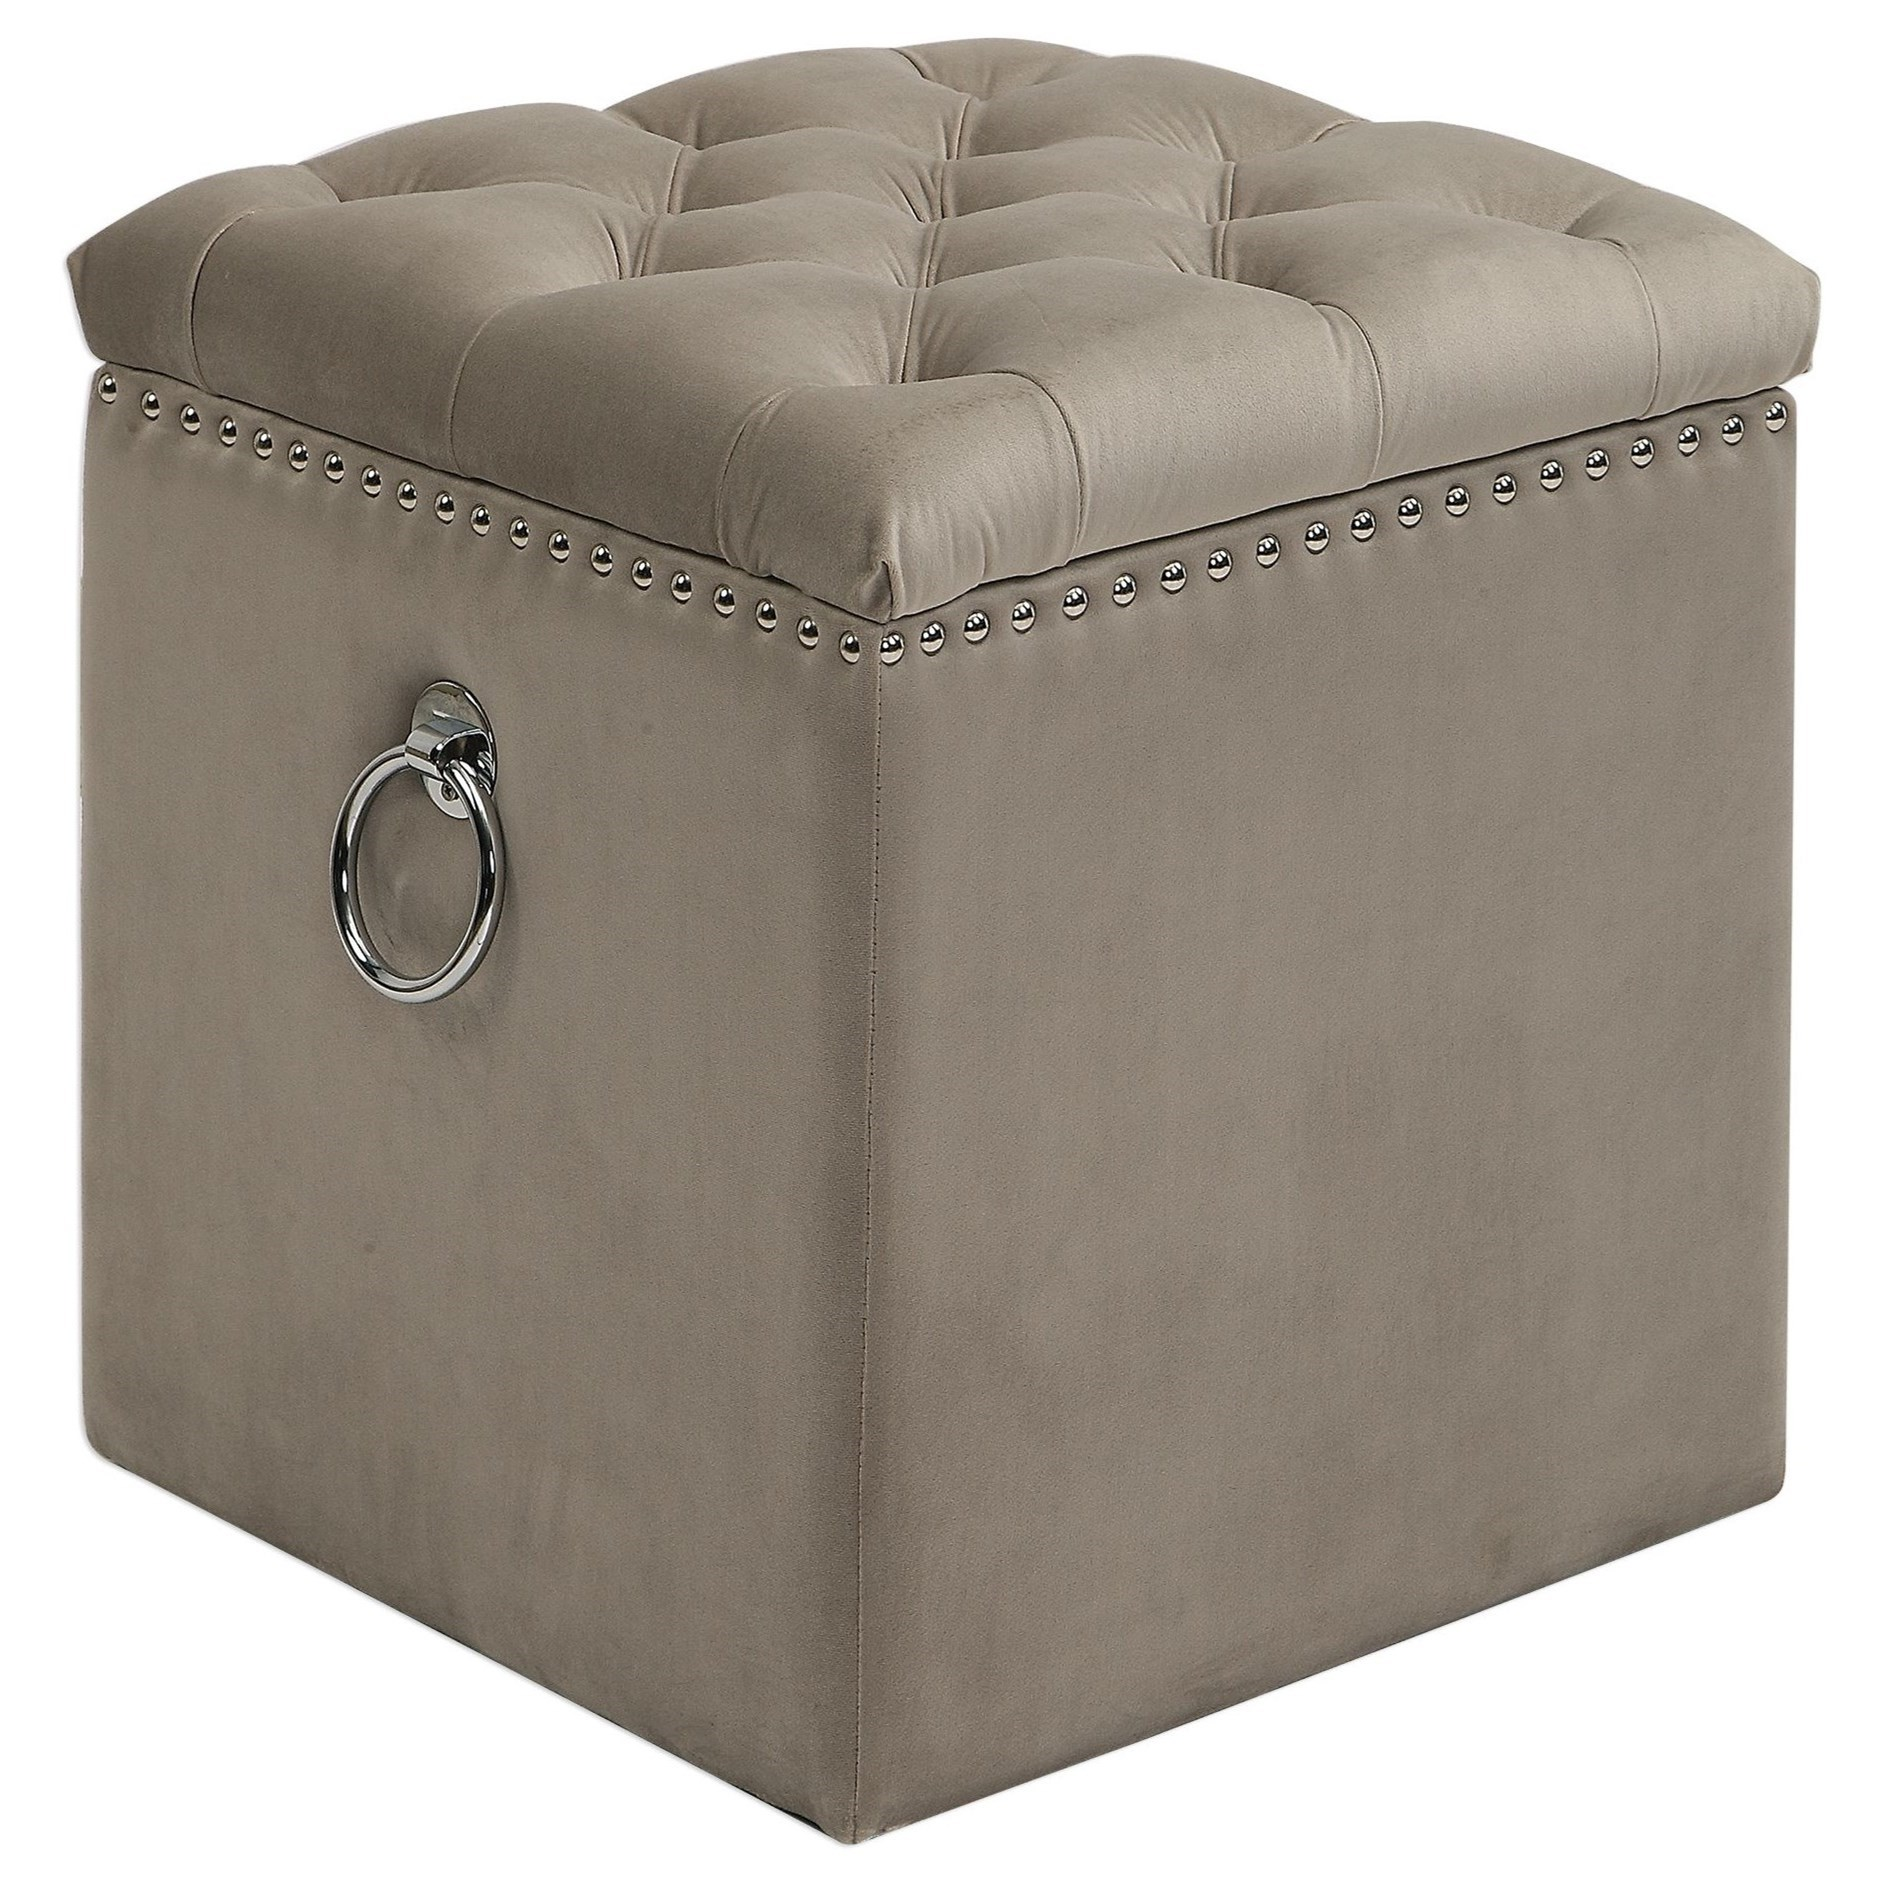 Accent Furniture - Ottomans Talullah Tufted Storage Ottoman by Uttermost at O'Dunk & O'Bright Furniture